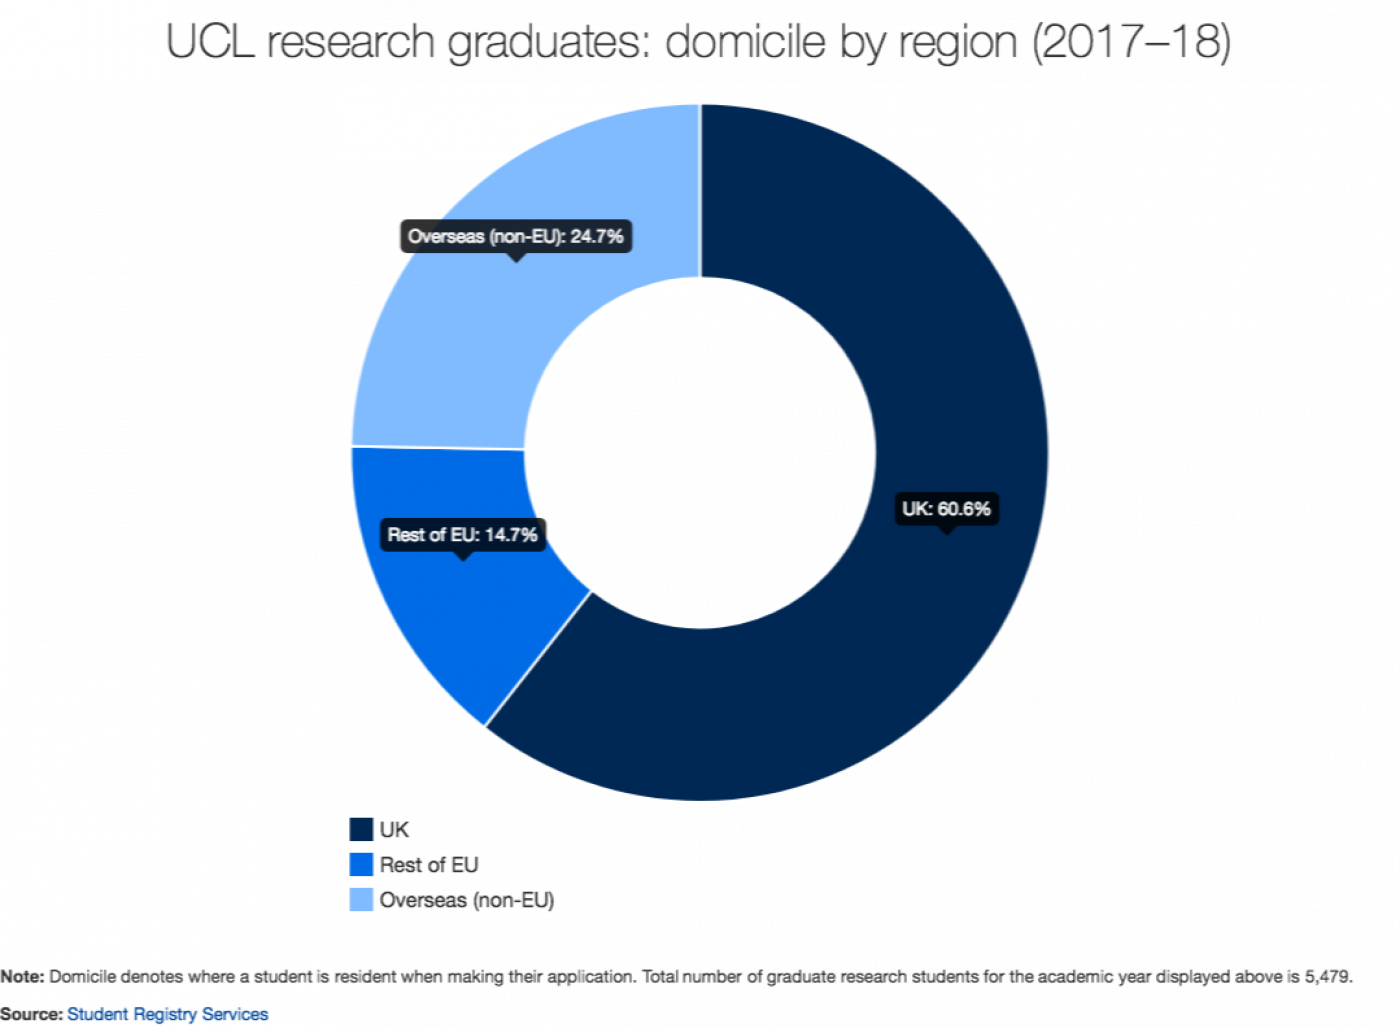 UCL graduate research students: domicile by region